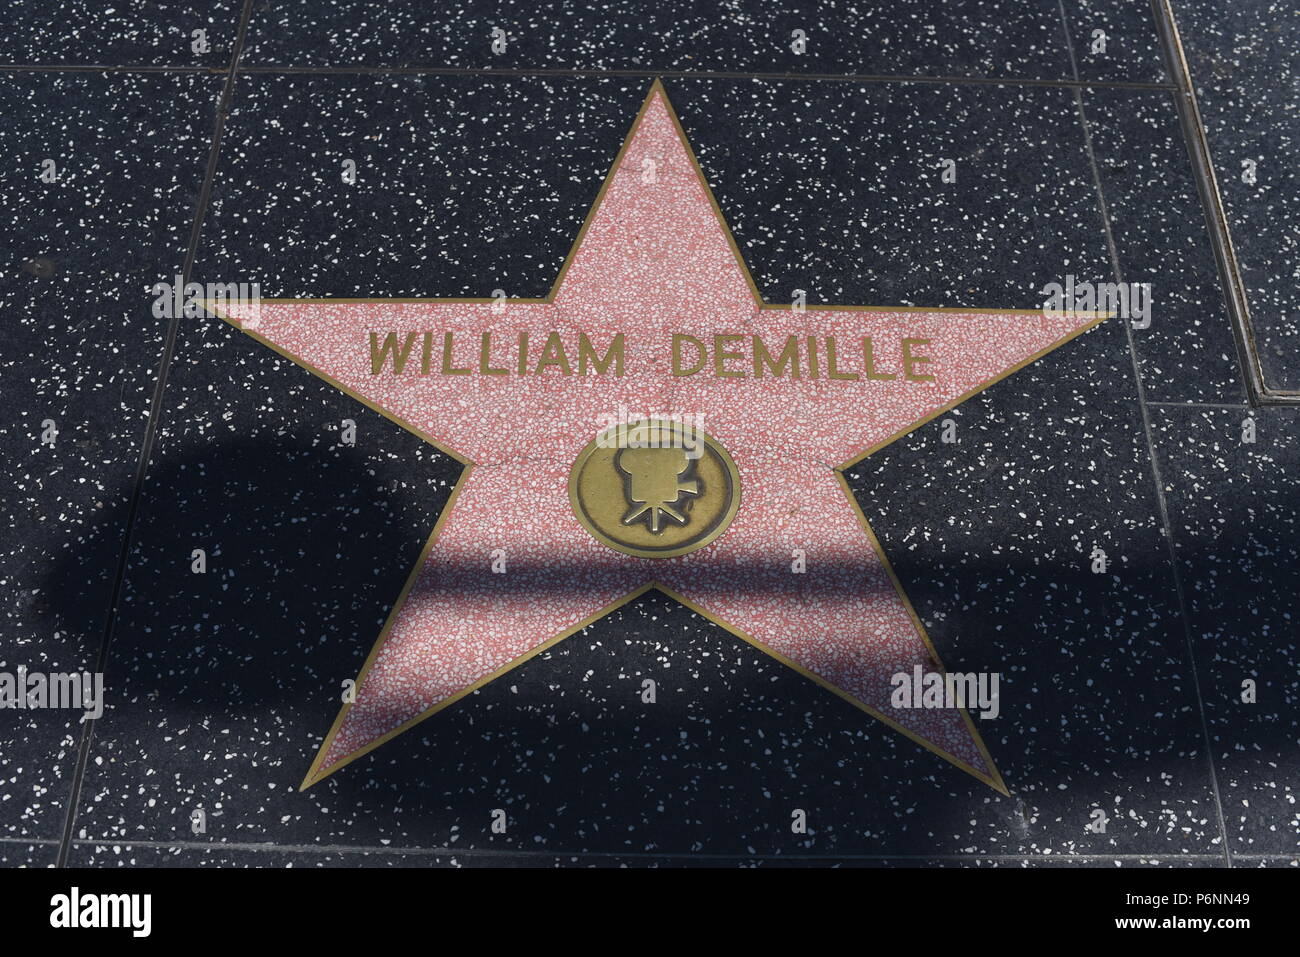 Demille Stock Photos & Demille Stock Images - Alamy